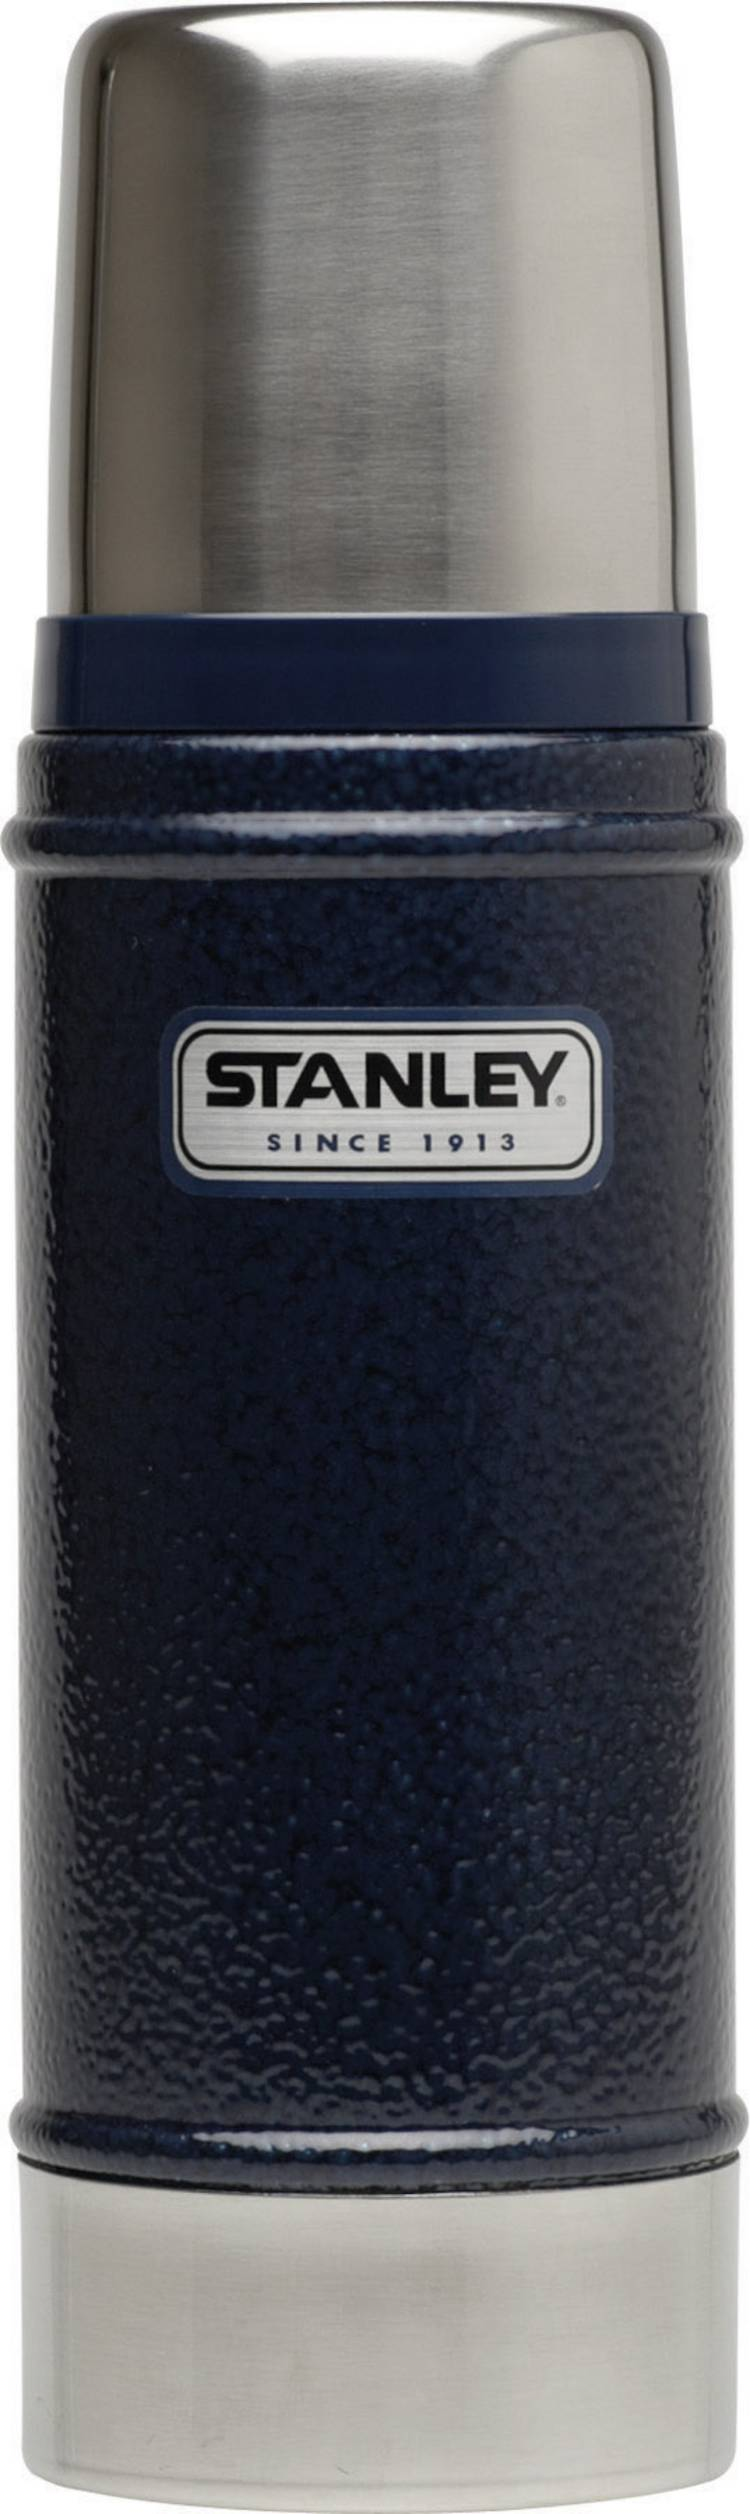 Image of Stanley Classic 10-01228-022 Thermosfles Donkerblauw 470 ml